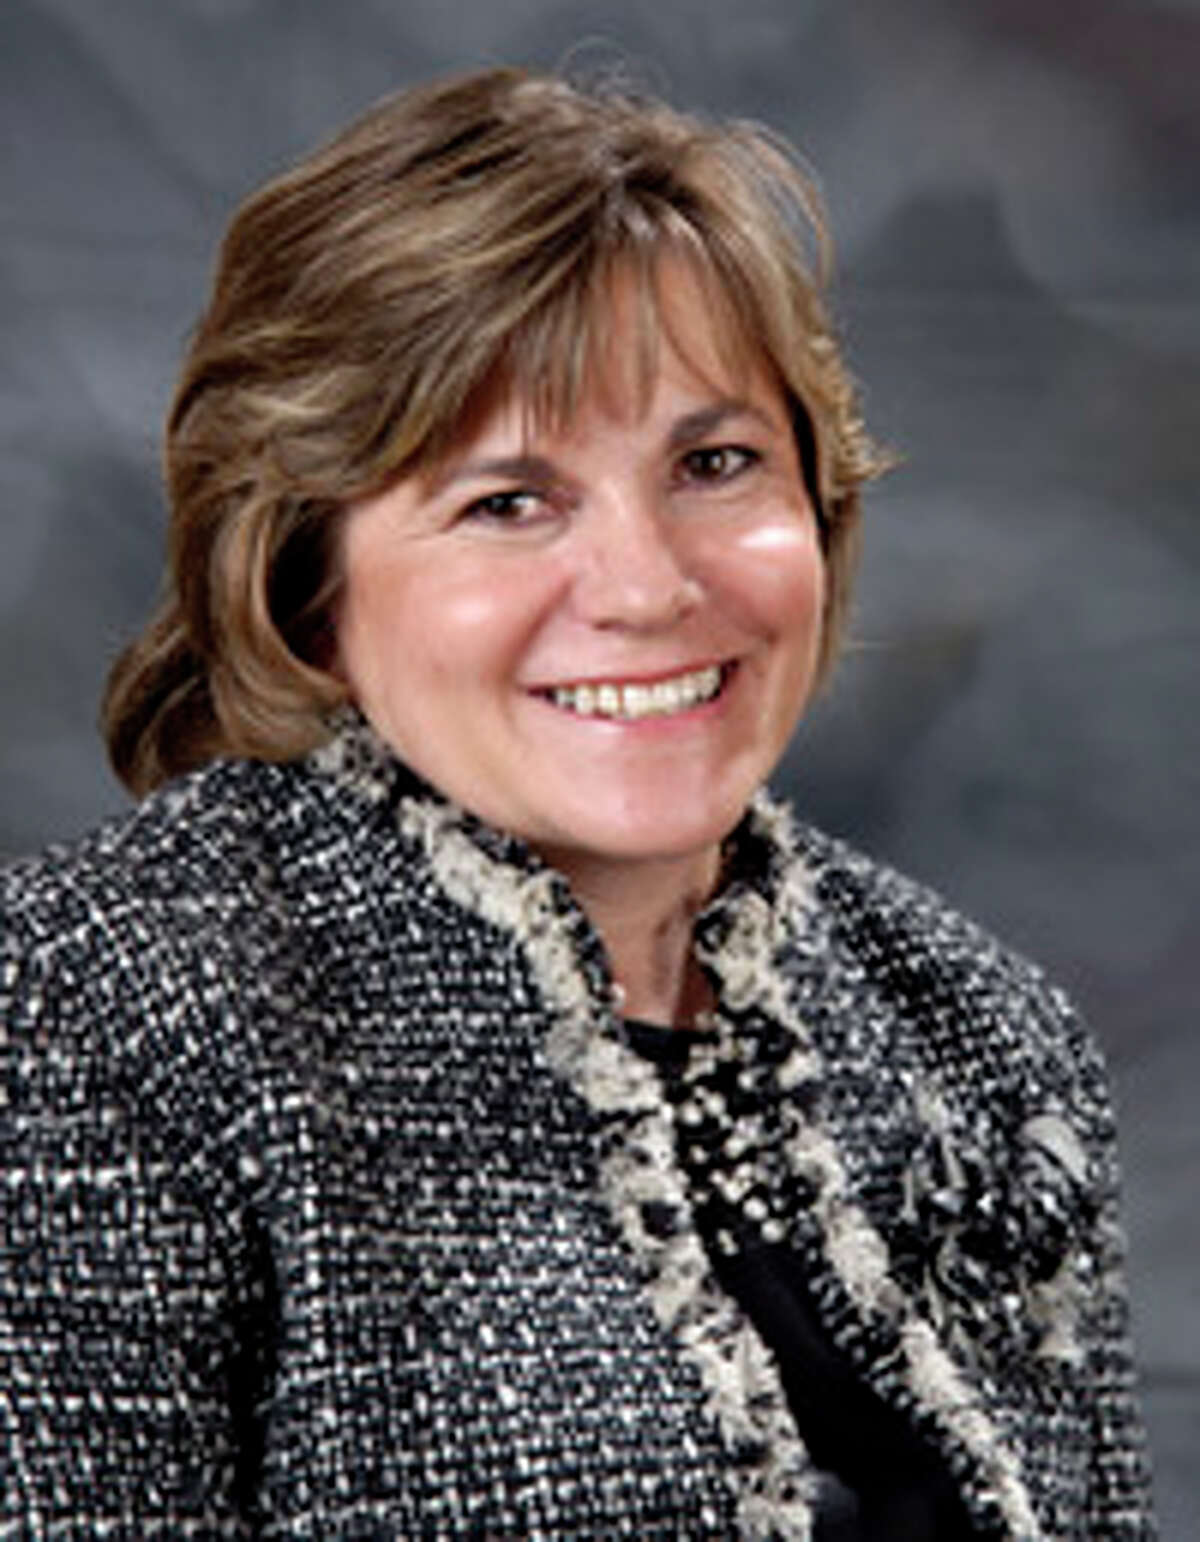 Woodlands Township member Peggy S. Hausman says she won't seek re-election in November.